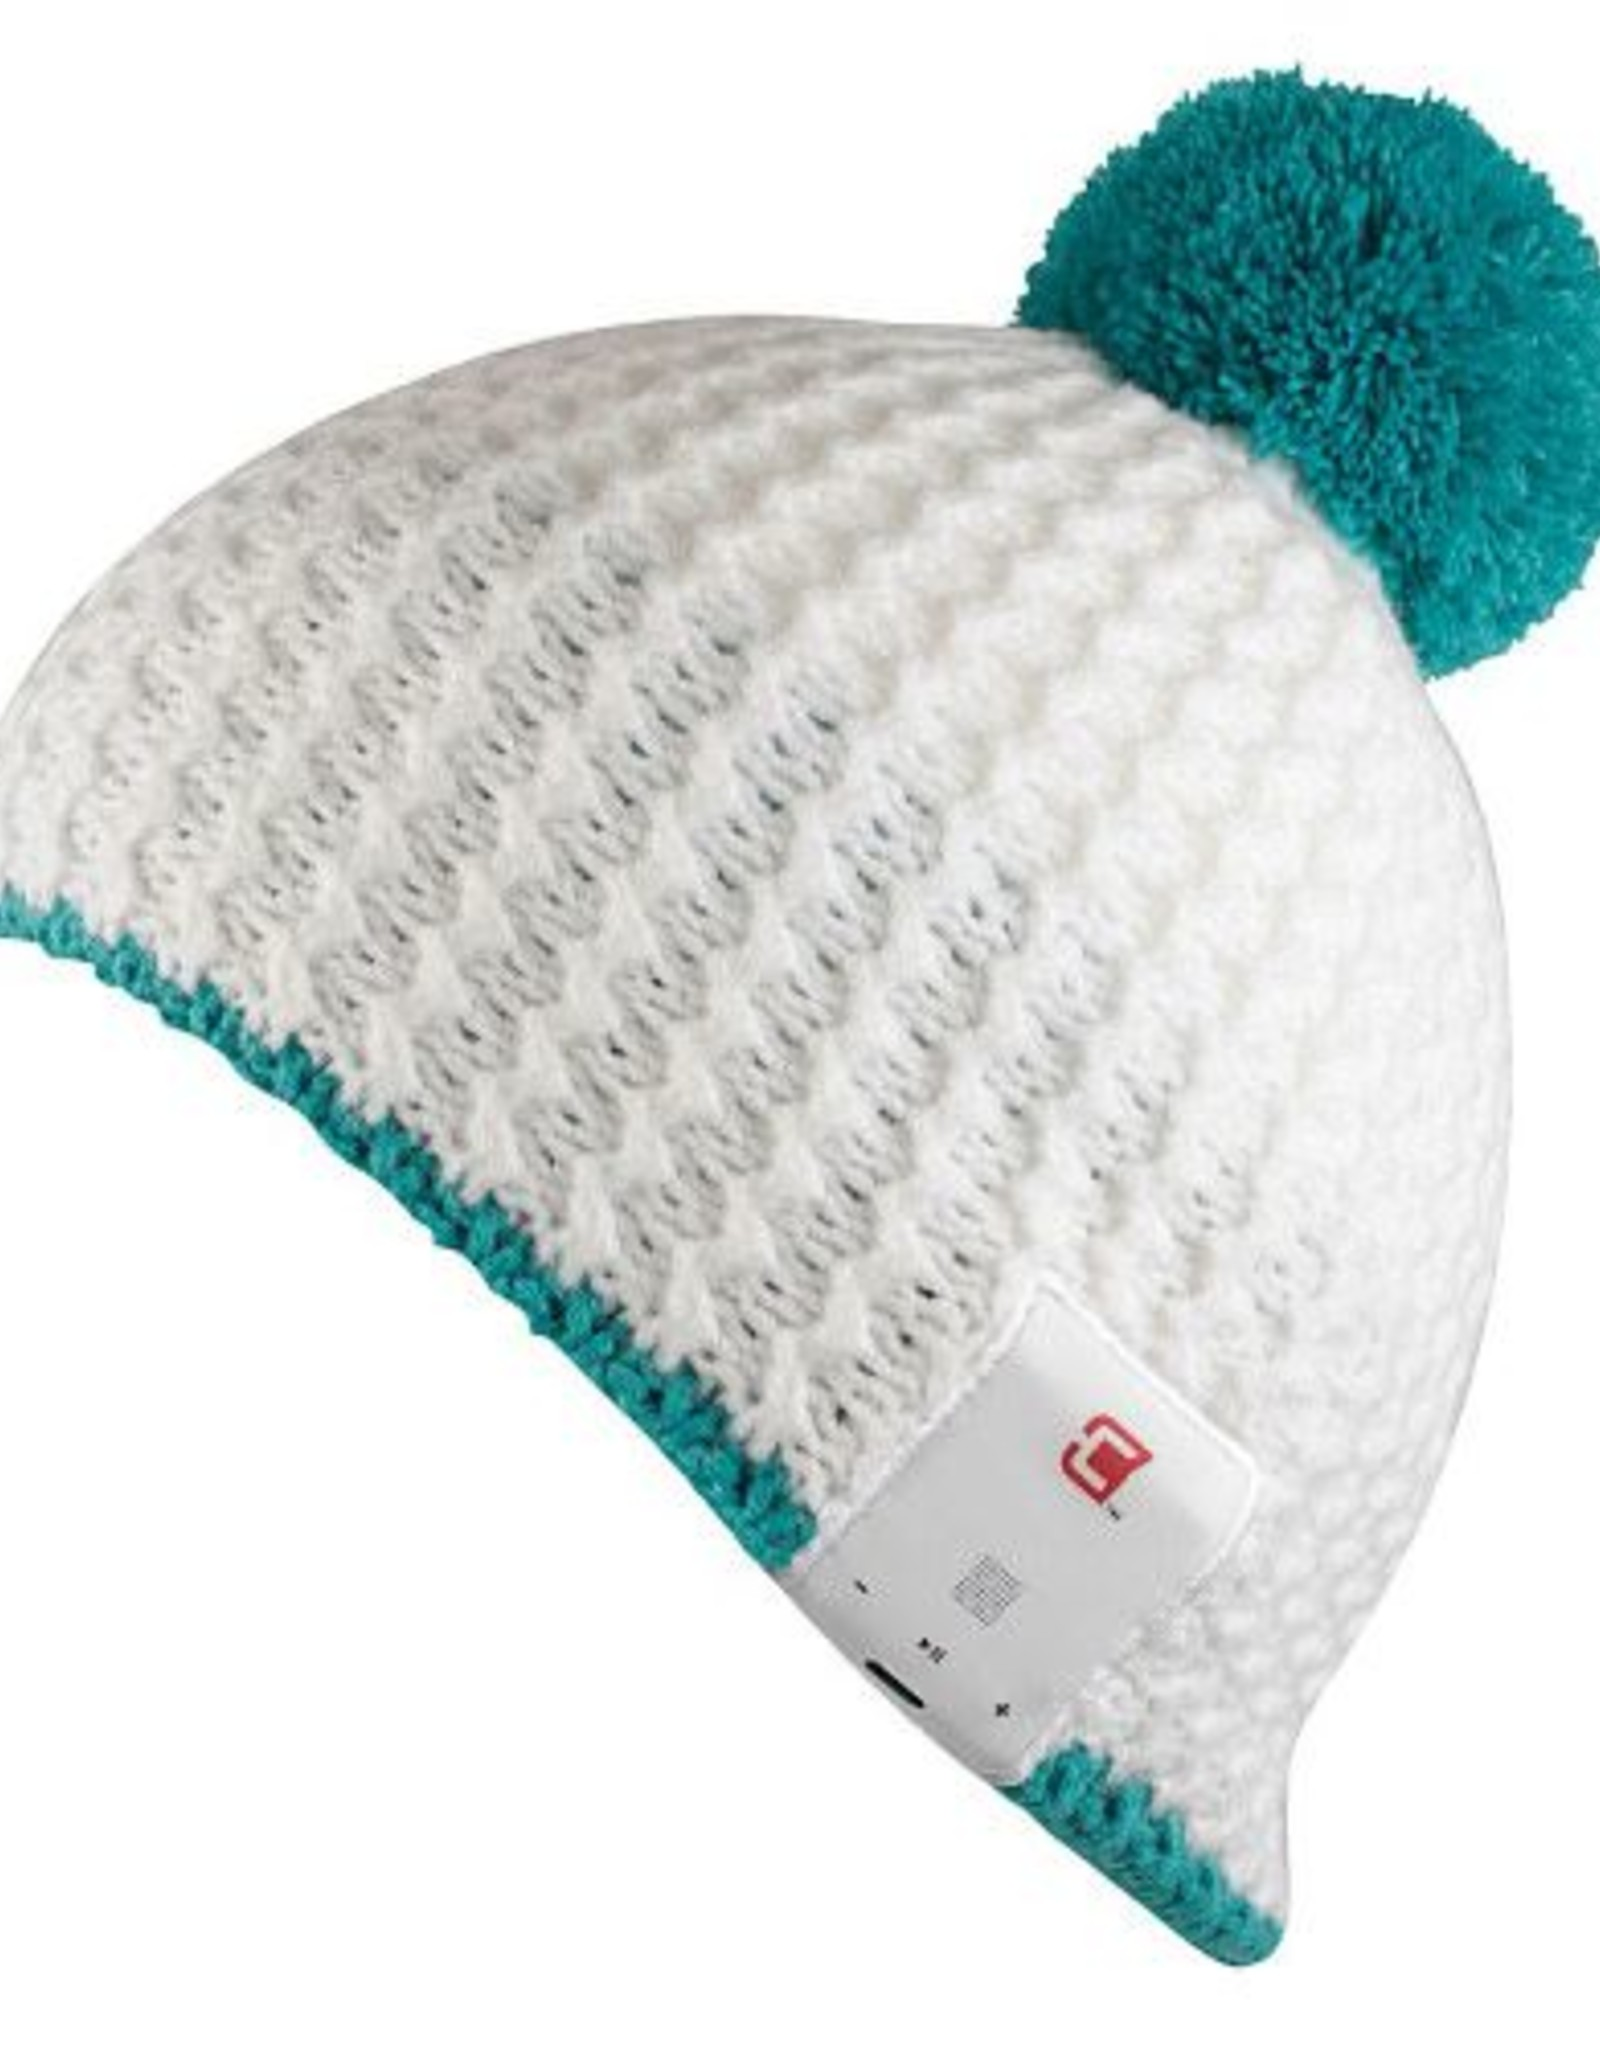 Caseco Caseco | Blu-Toque - Lilly Teal | CC-BTQ-LILLY-TL